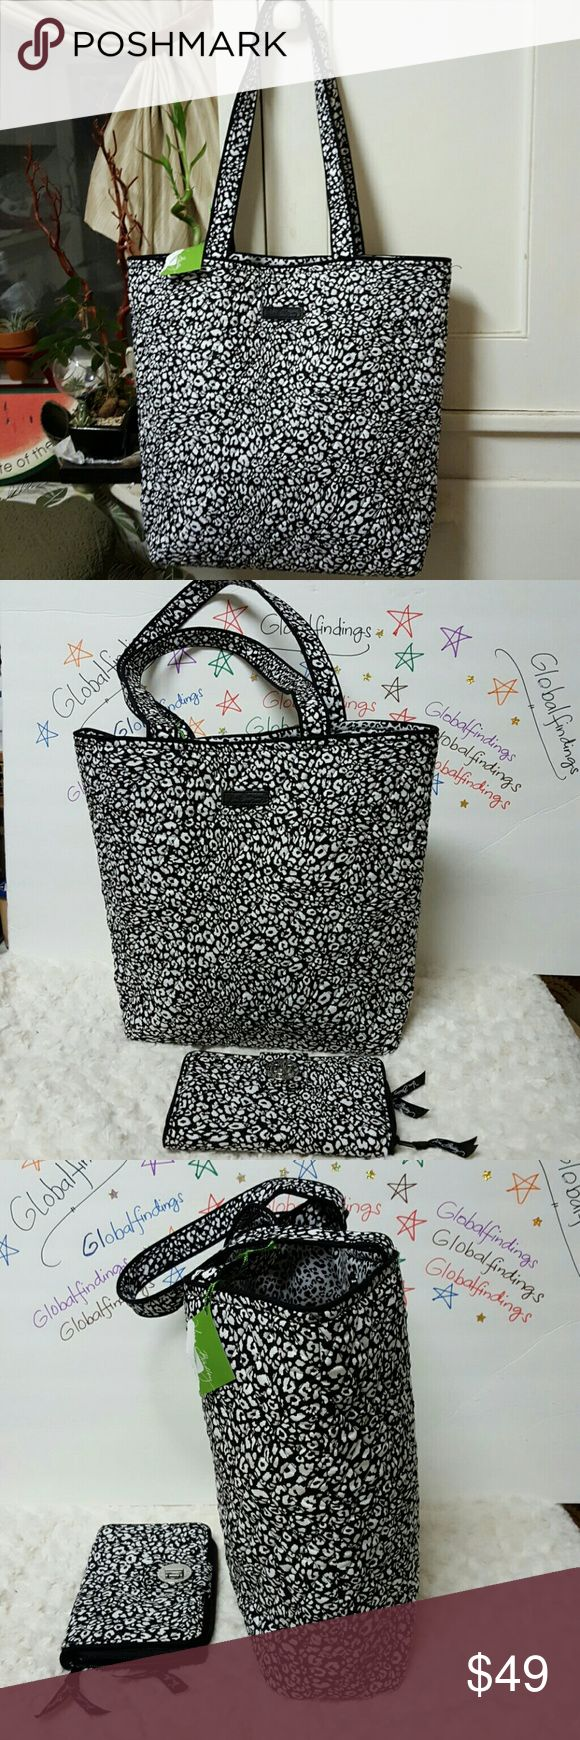 """2-Vera Bradley Camocat Tote & Turn Lock Wallet SALE ***Vera Bradley Camocat Tote and Turn Lock Wallet New, never been used. The wallet is with card slots , bill compartments Snap magnetic closure..Pls. Check photos for details. Tote measures L14"""" x W15"""". Vera Bradley Bags Totes"""